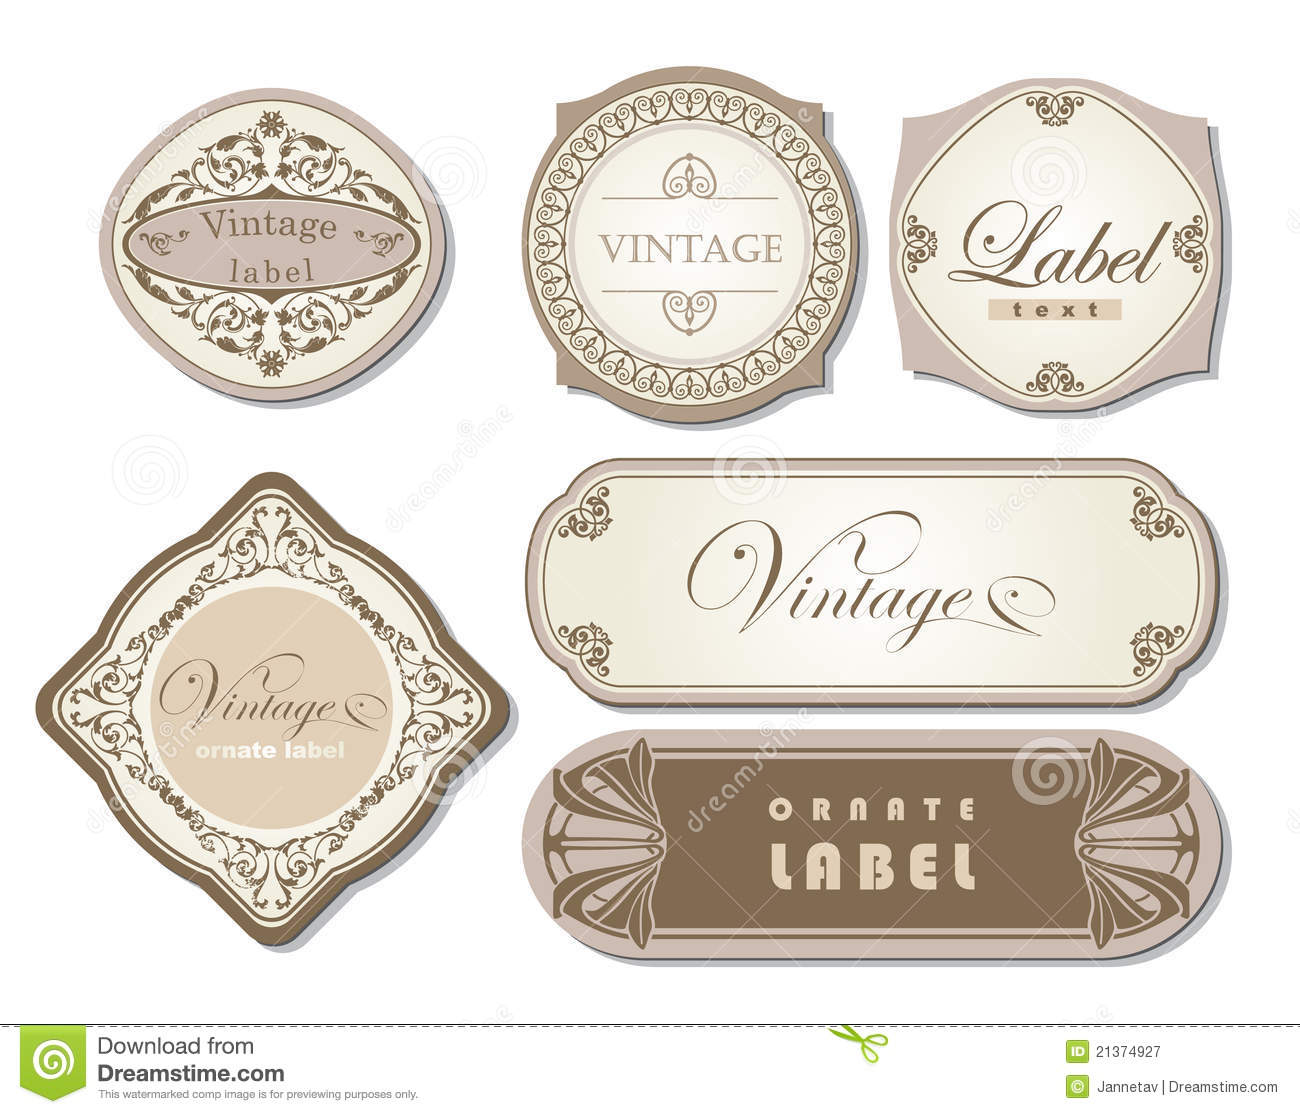 z label templates - vintage blank label templates hot girls wallpaper